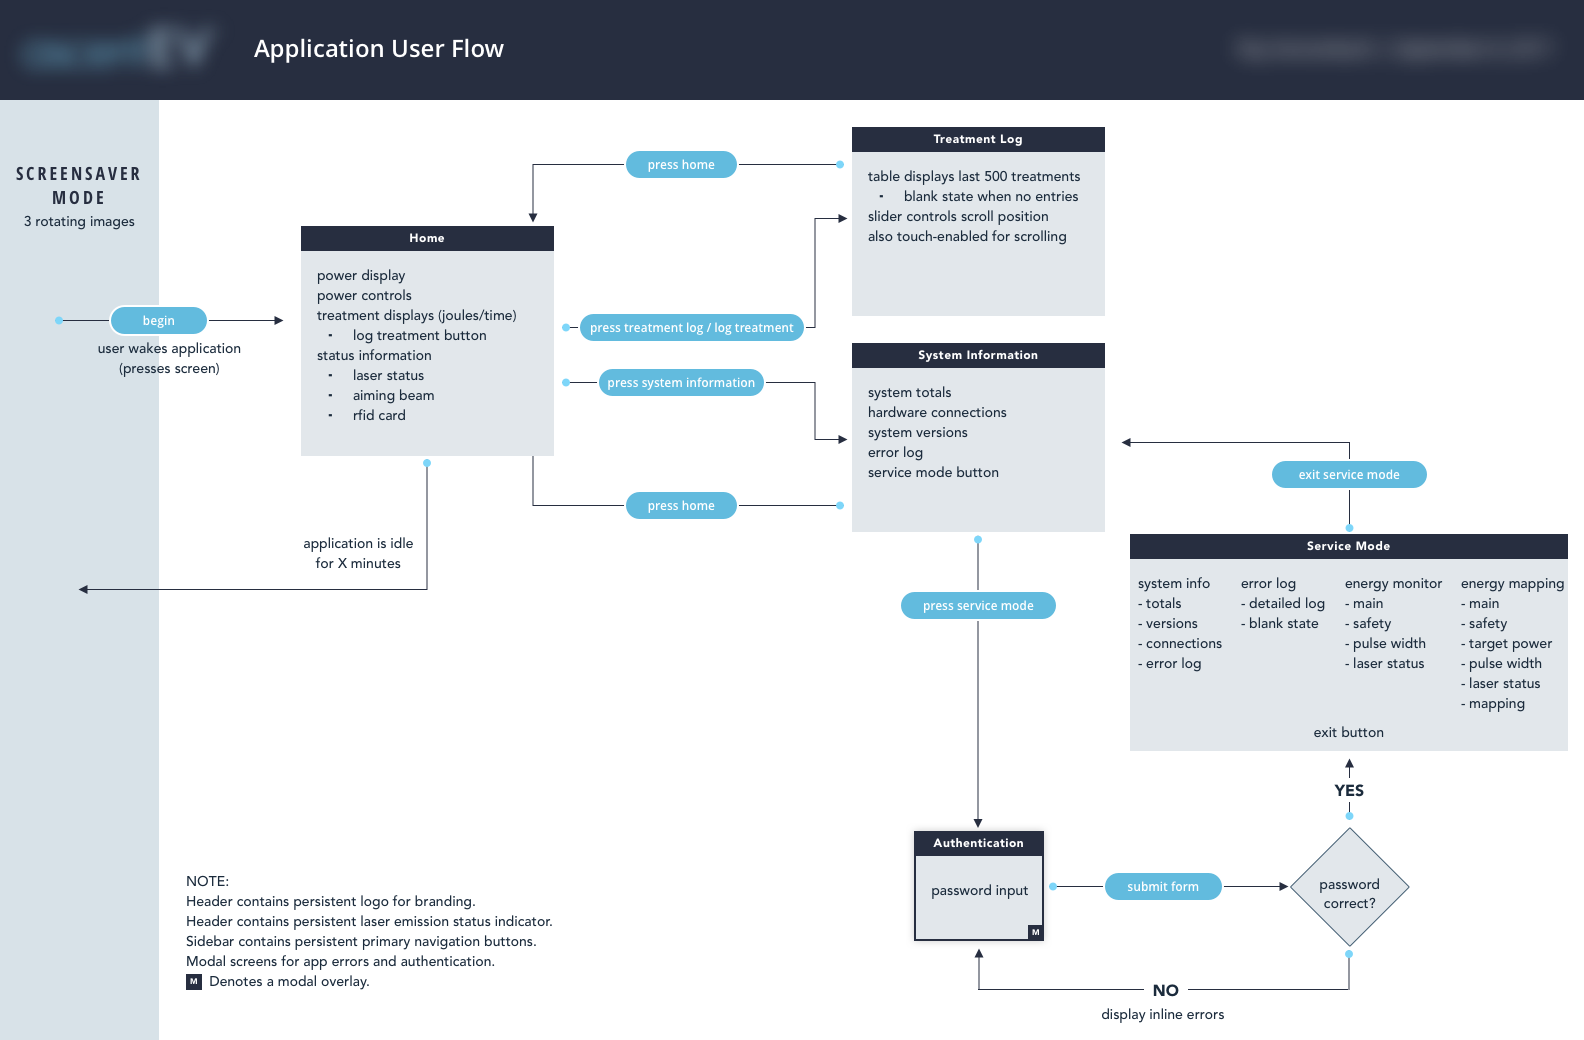 Primary User Flow 2.0